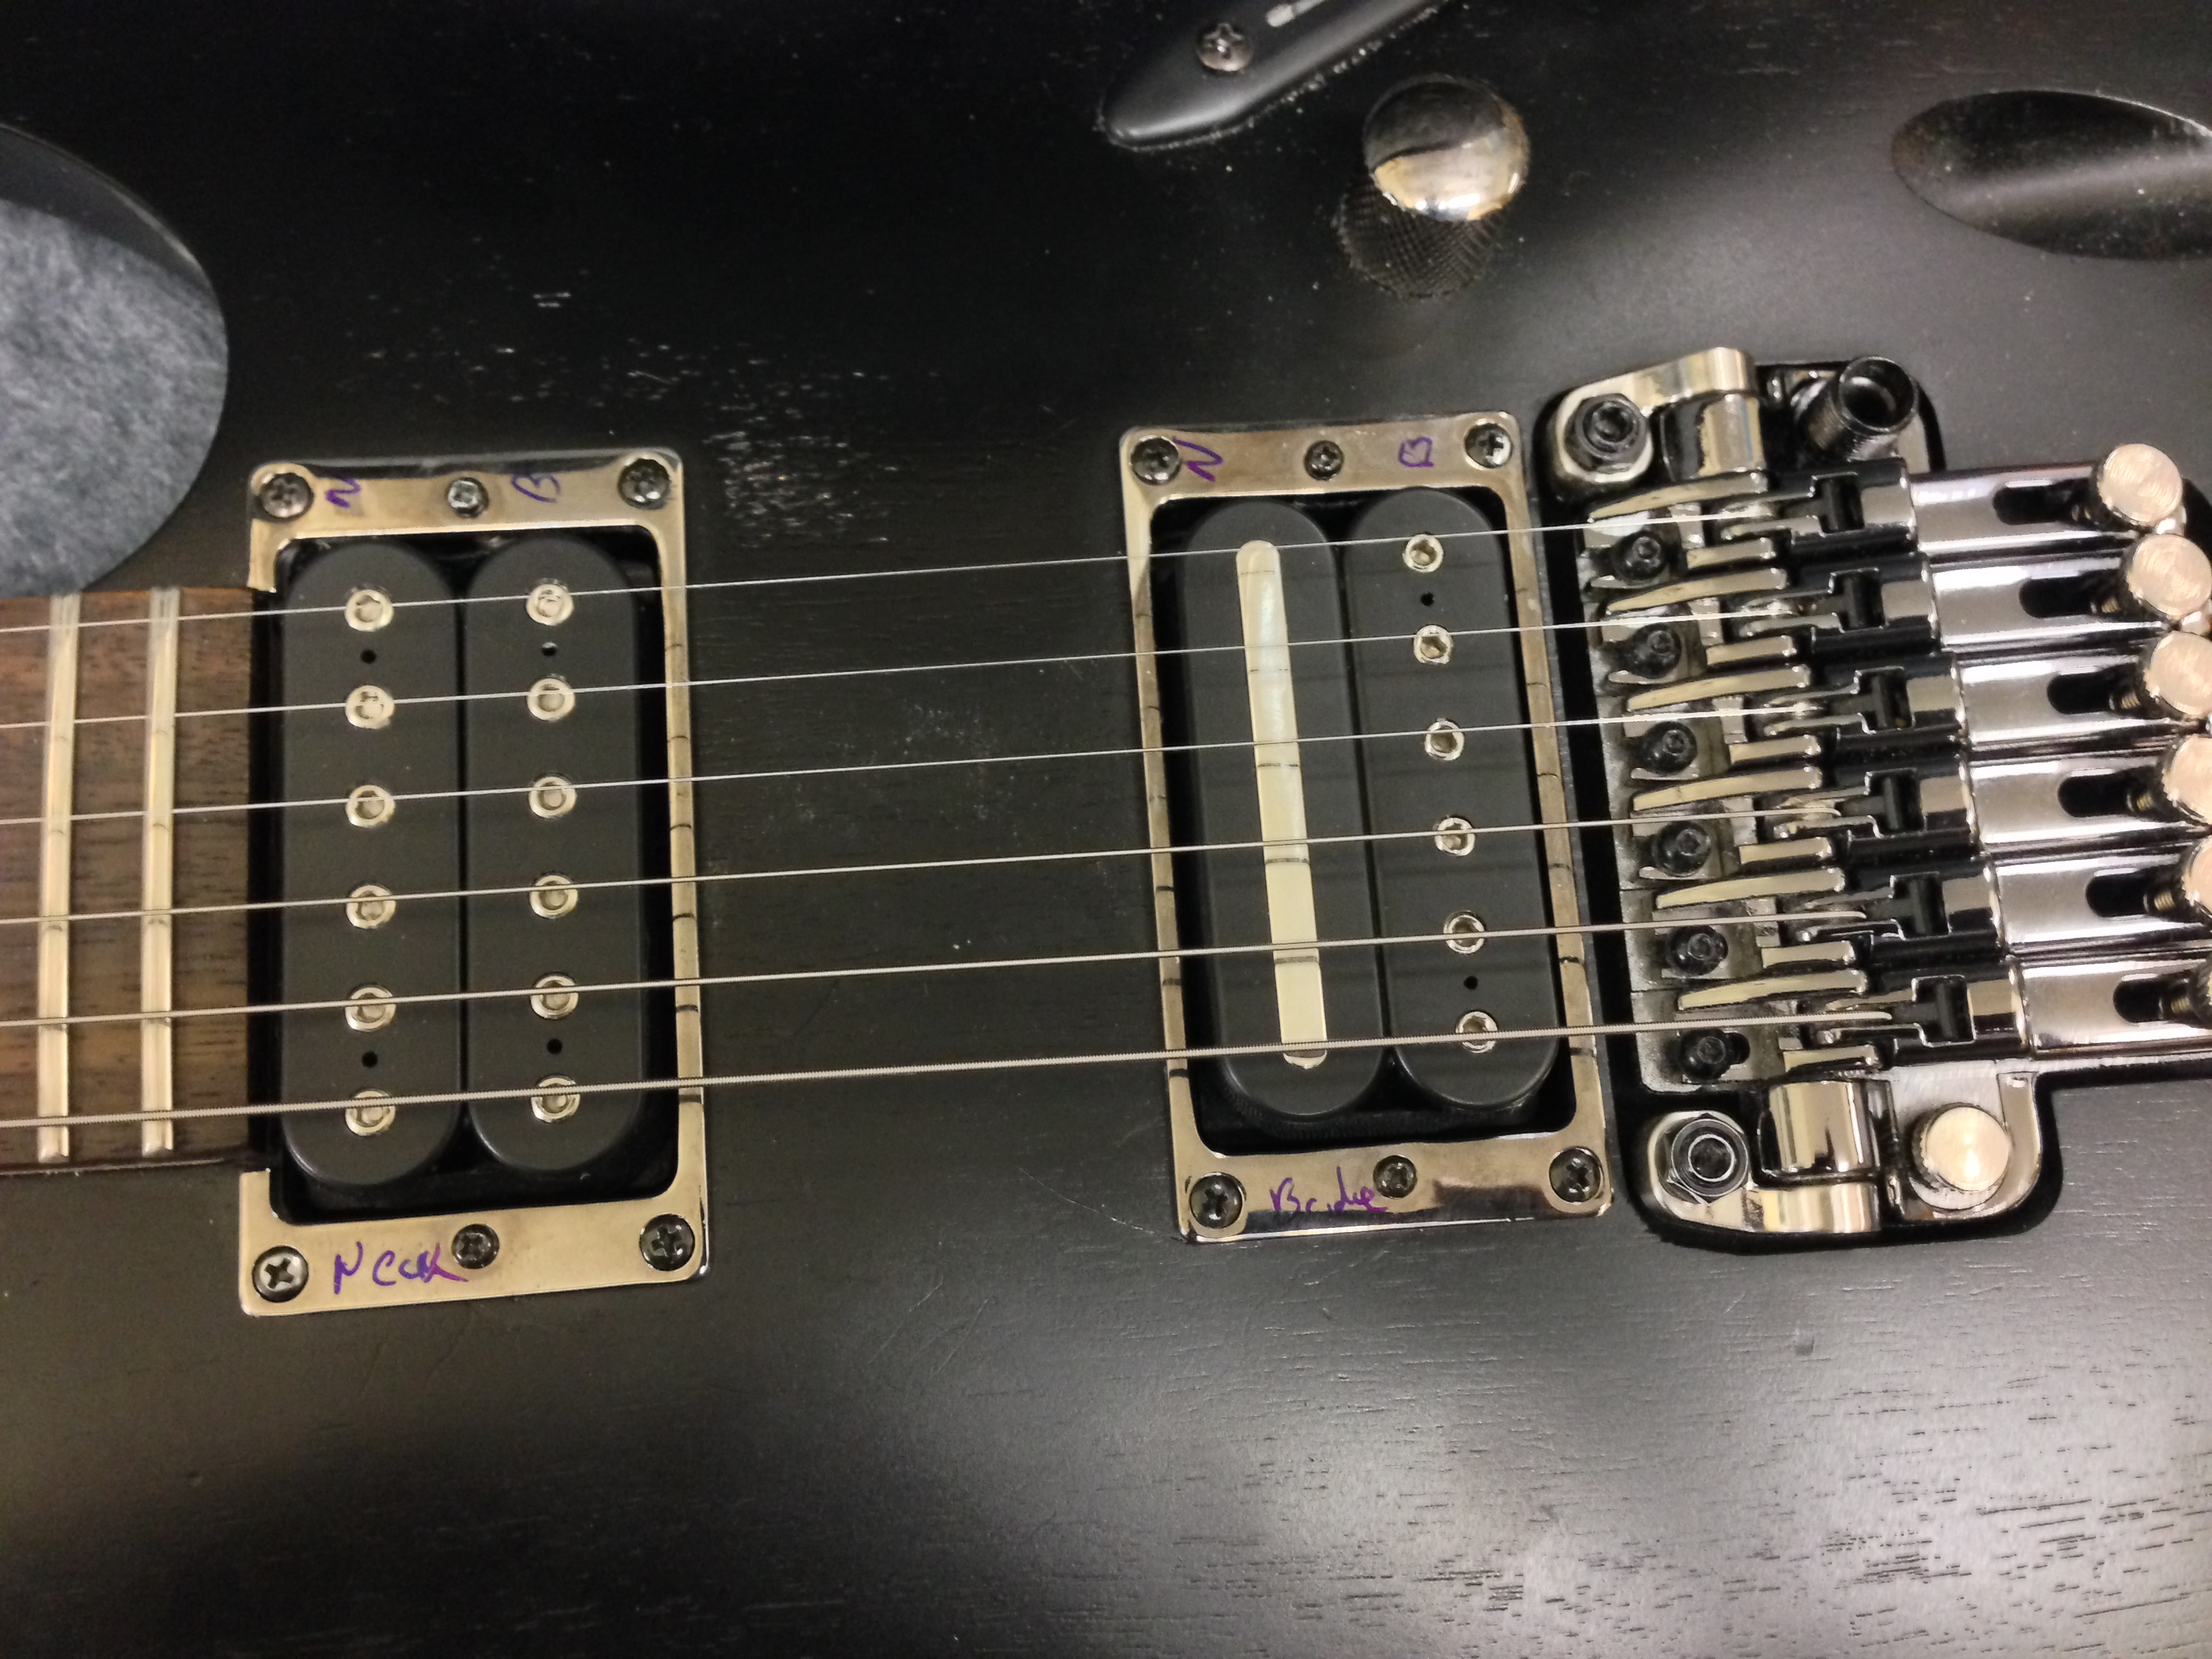 Changing The Pickups In An Ibanez S420 Guitar Inability To Pick Up Wiring Schematics Dimarzio